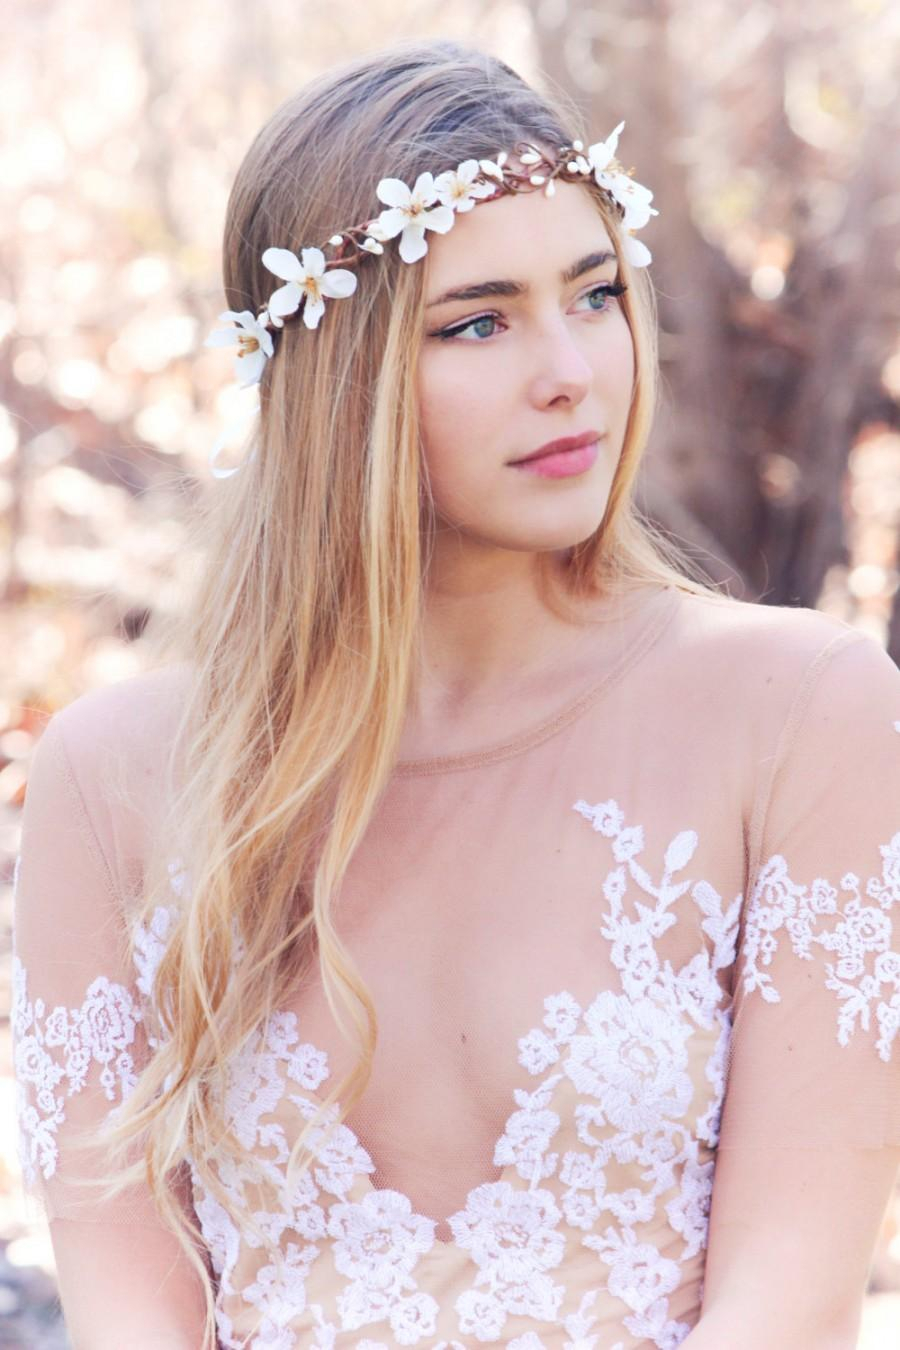 White Apple Blossom Boho Wedding Wreath, Bridal Flower Crown, Bridal Inside Most Up To Date Flower Crown Rings (View 24 of 25)